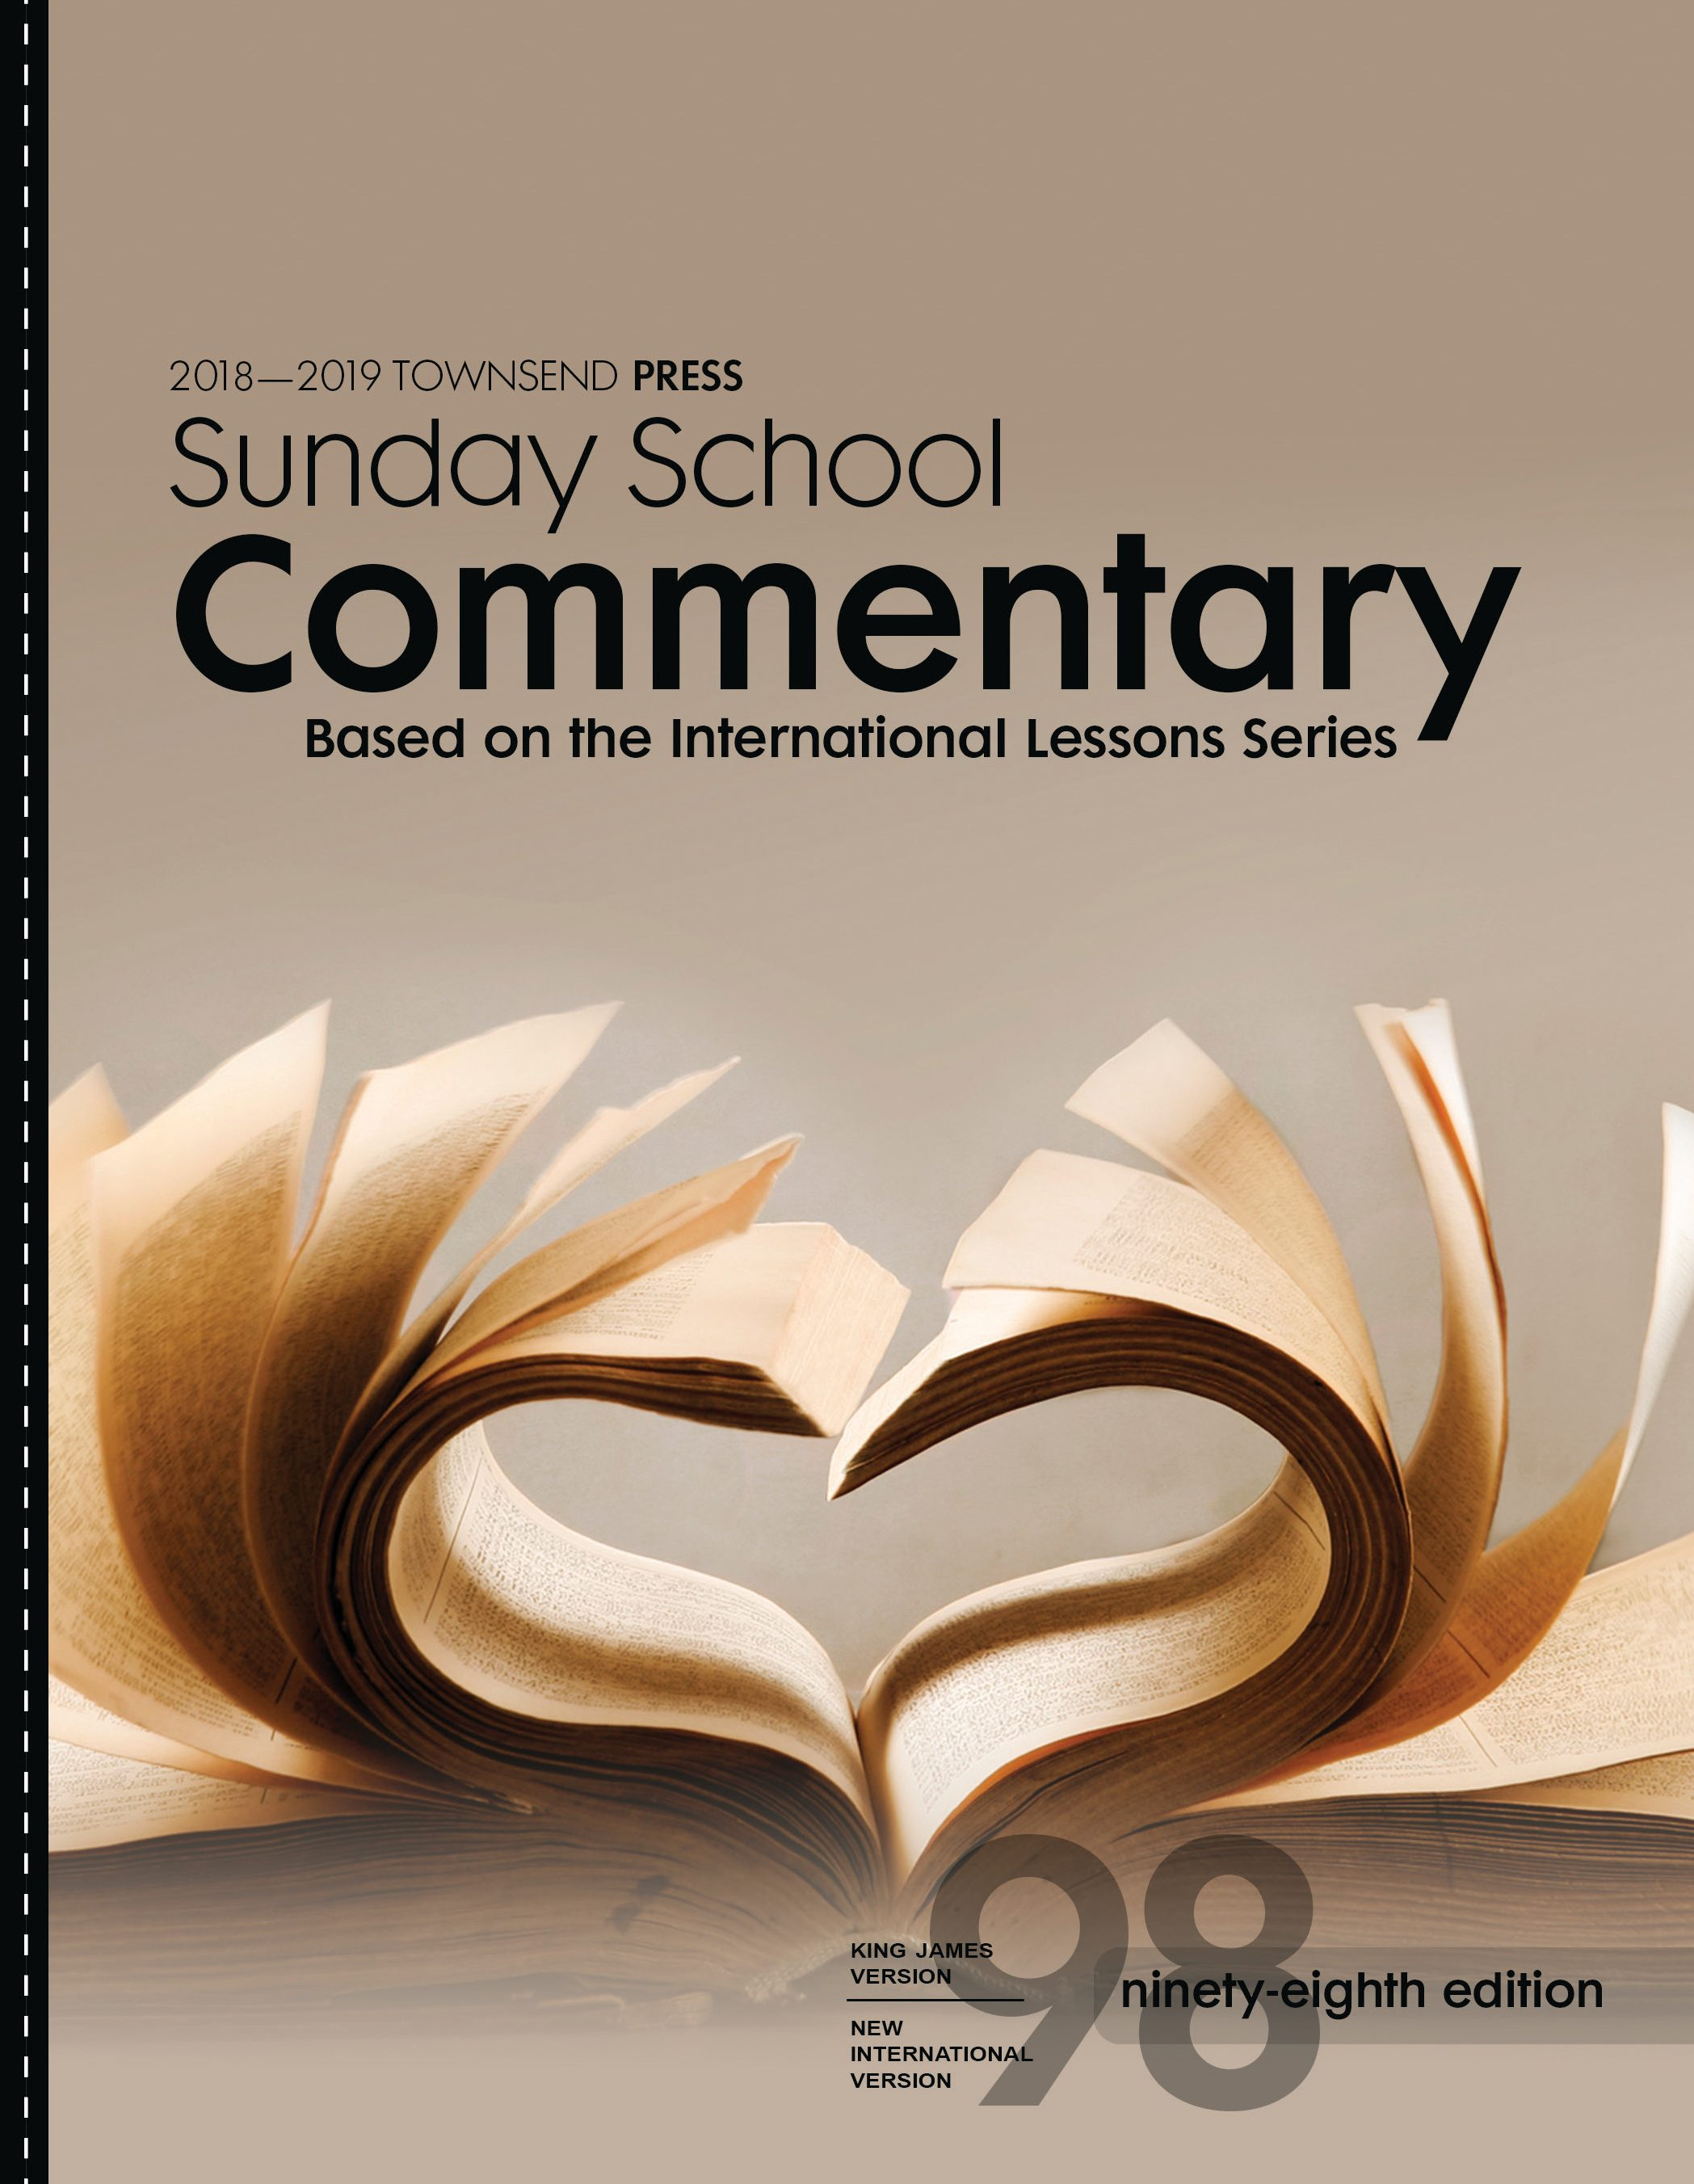 2018-2019 Townsend Press Sunday School Commentary 98th Edition